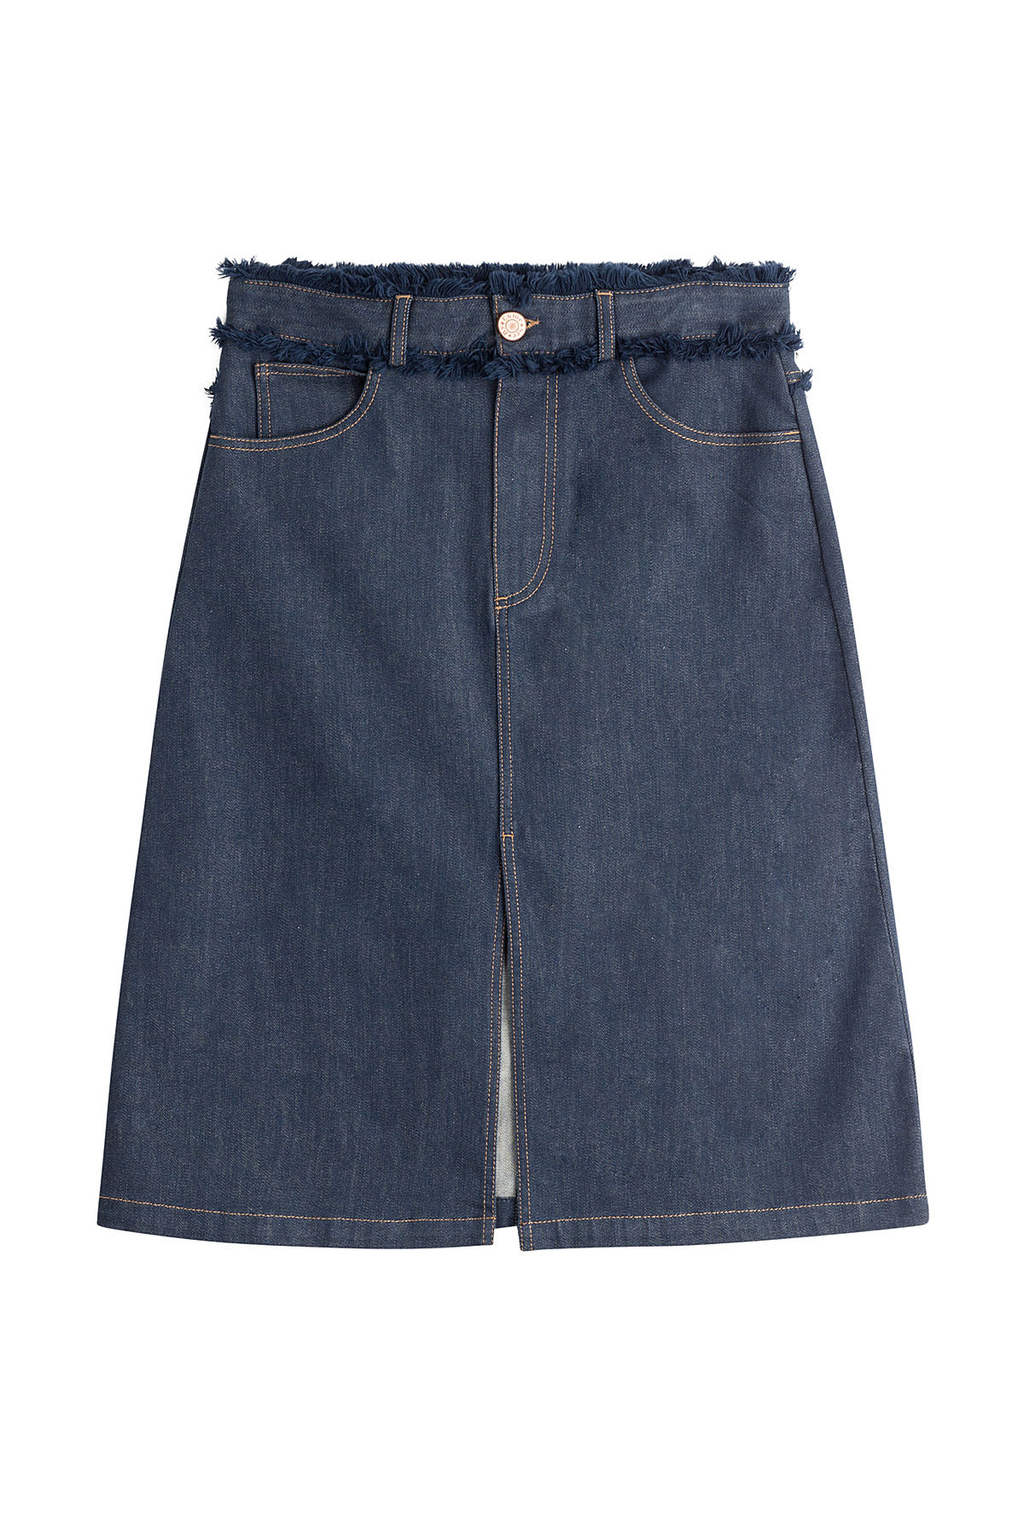 Jean Skirt With Fringed Waistband Blue - pattern: plain; style: pencil; fit: body skimming; waist: high rise; predominant colour: navy; occasions: casual, creative work; length: just above the knee; fibres: cotton - 100%; texture group: denim; pattern type: fabric; season: s/s 2016